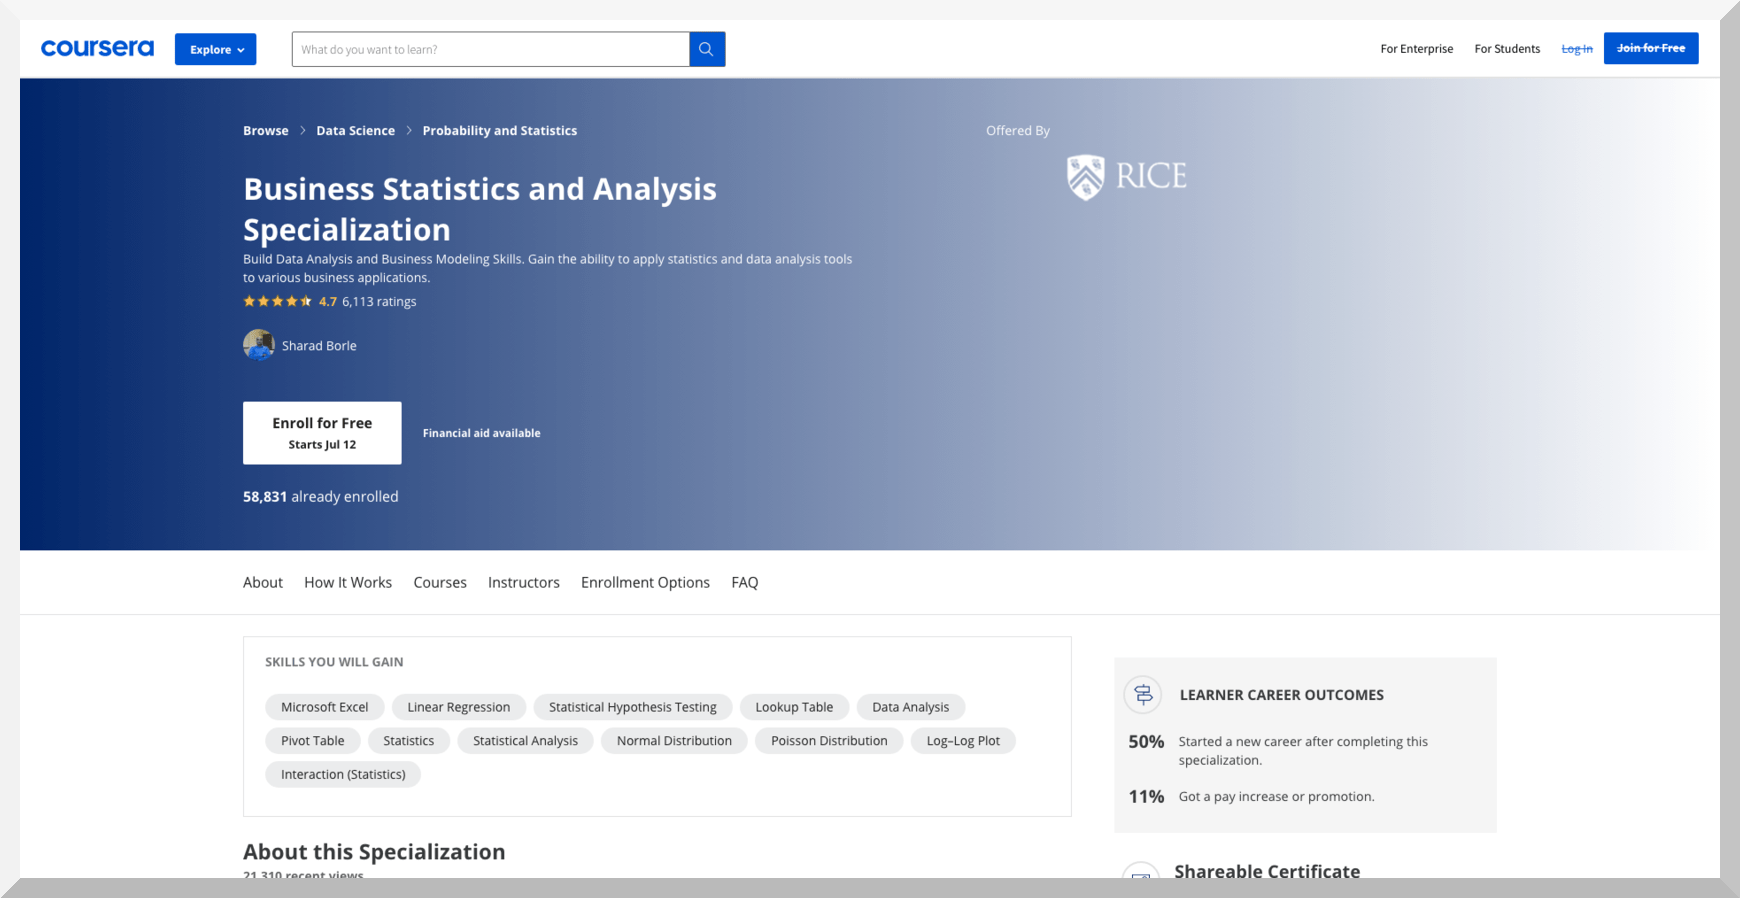 Business Statistics and Analysis Specialization - Coursera